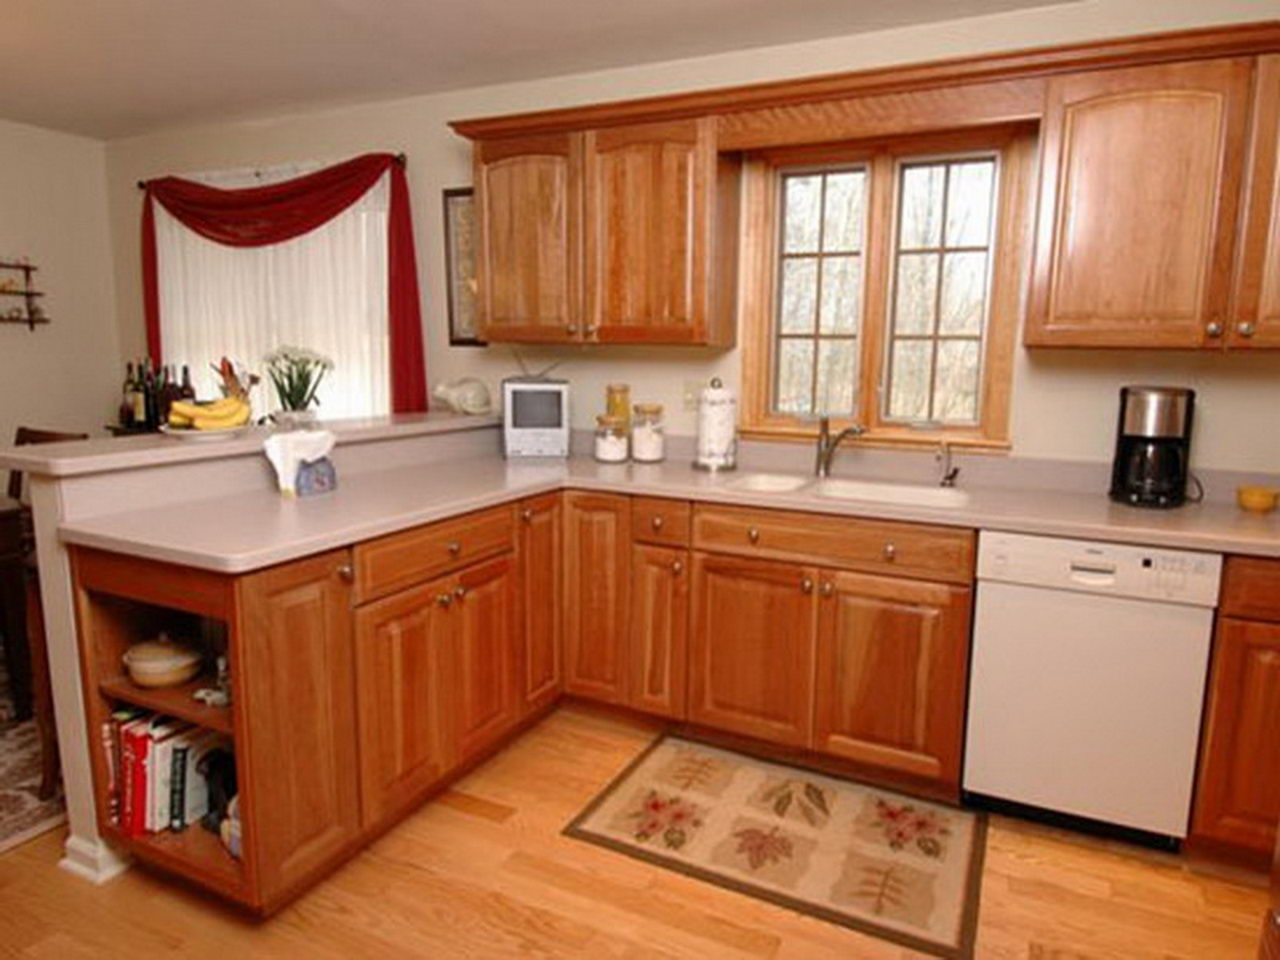 Kitchen cabinets and storage ideas homedizz for Cabinet storage ideas kitchen